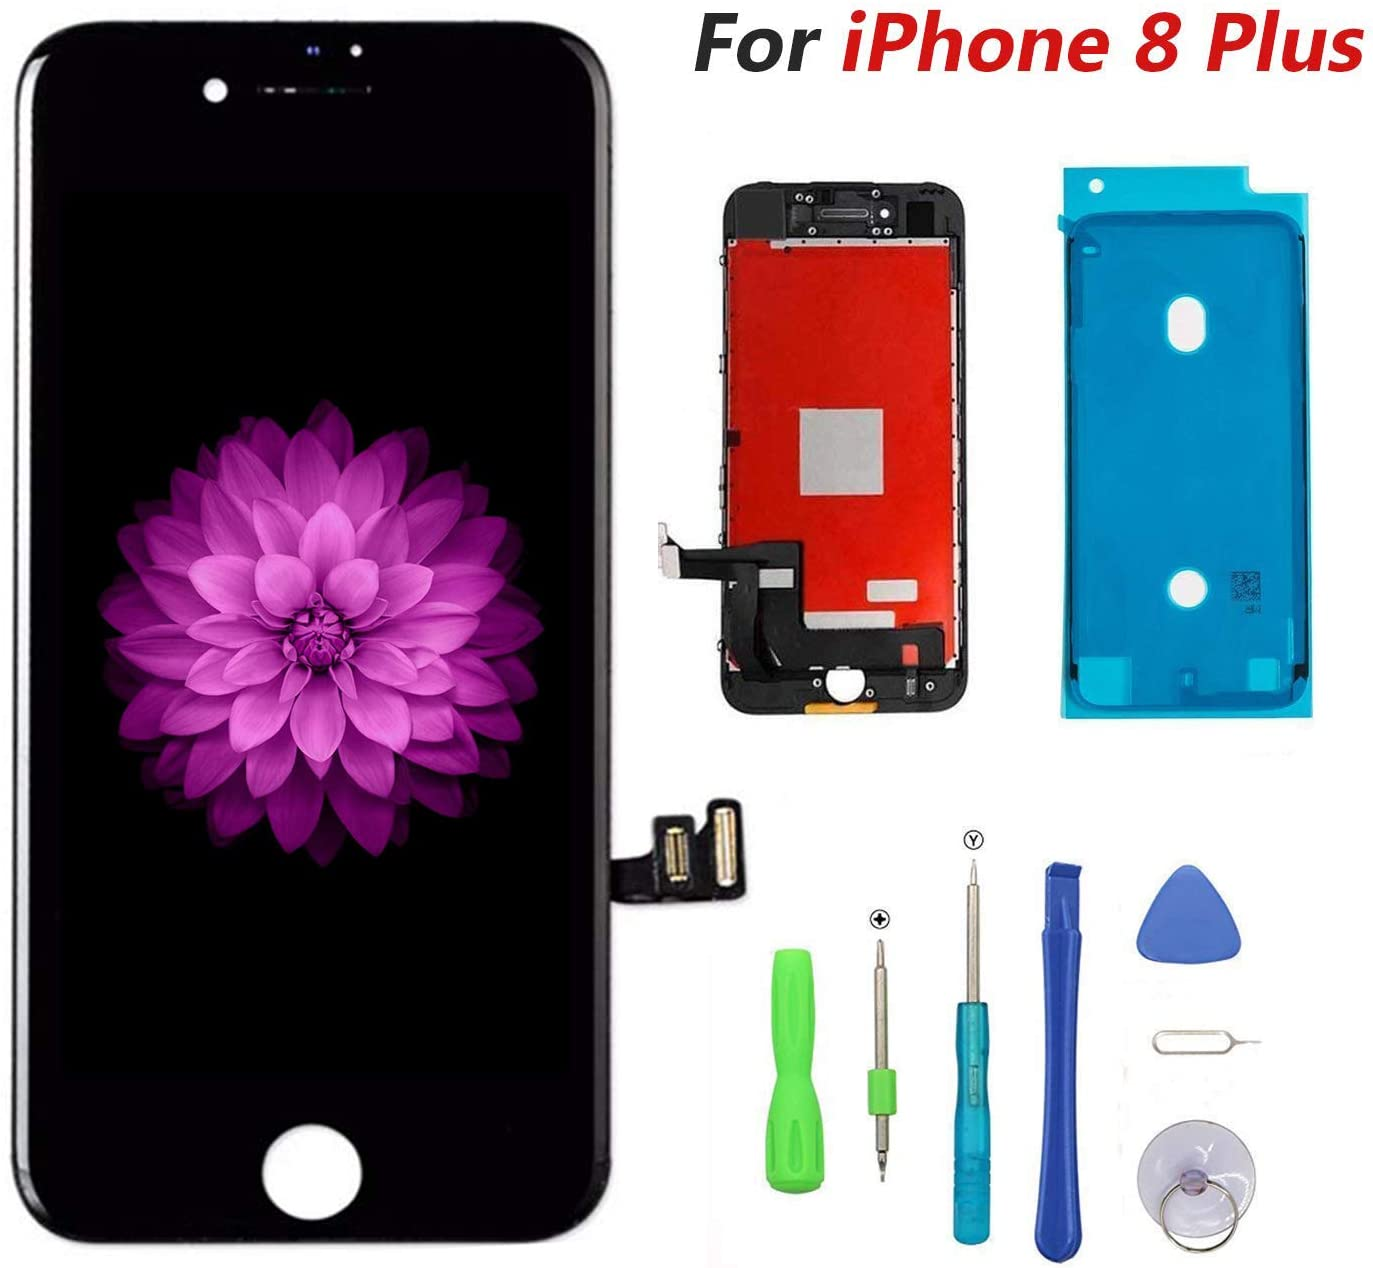 Compatible with iPhone 8 Plus Black 5.5 ,LCD Display /& Touch Screen Digitizer Frame Assembly Set with 3D Touch Free Repair Tool